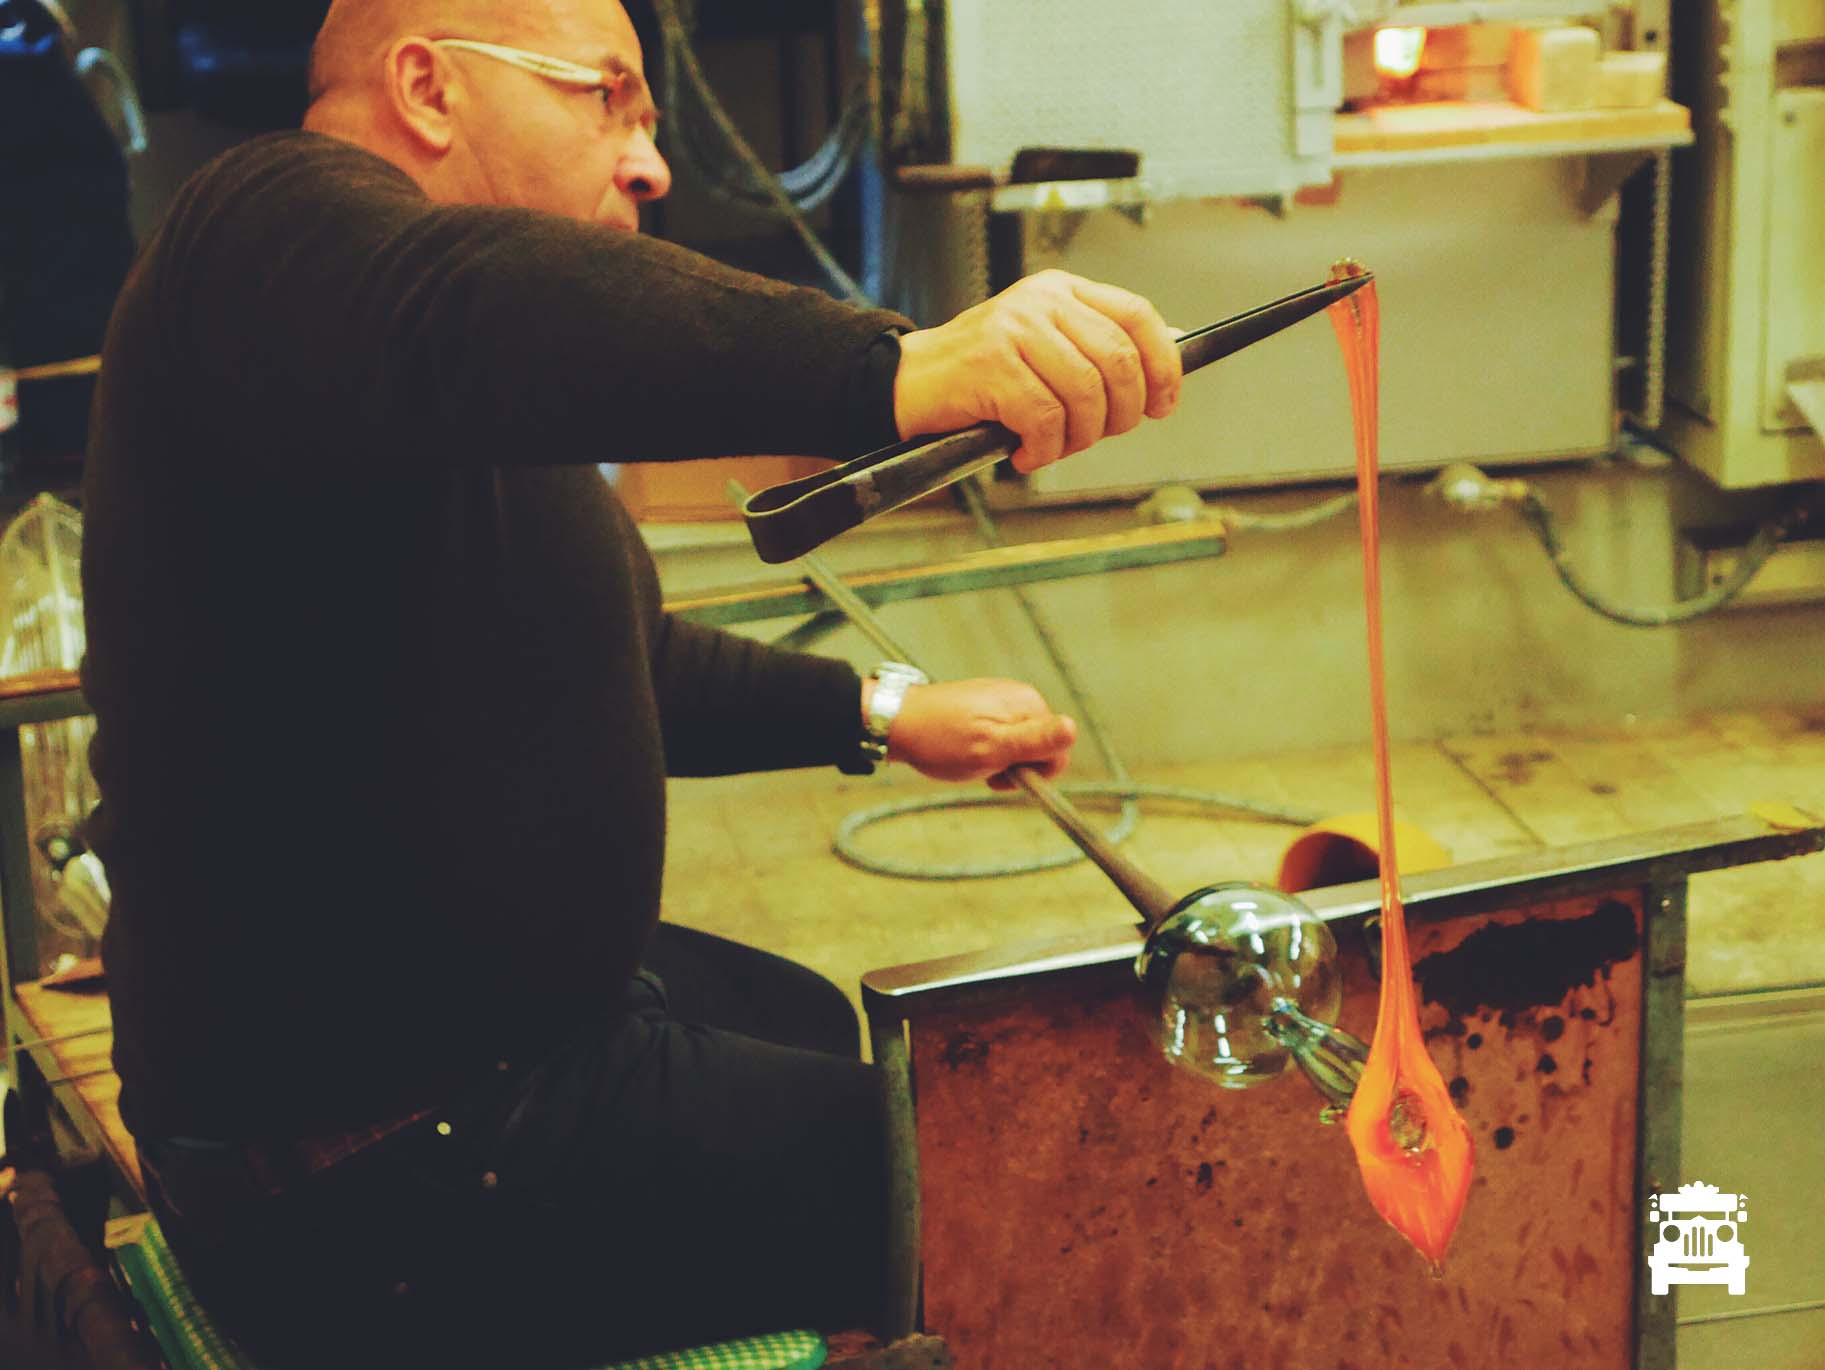 Glass blowing exhibition, amazing!